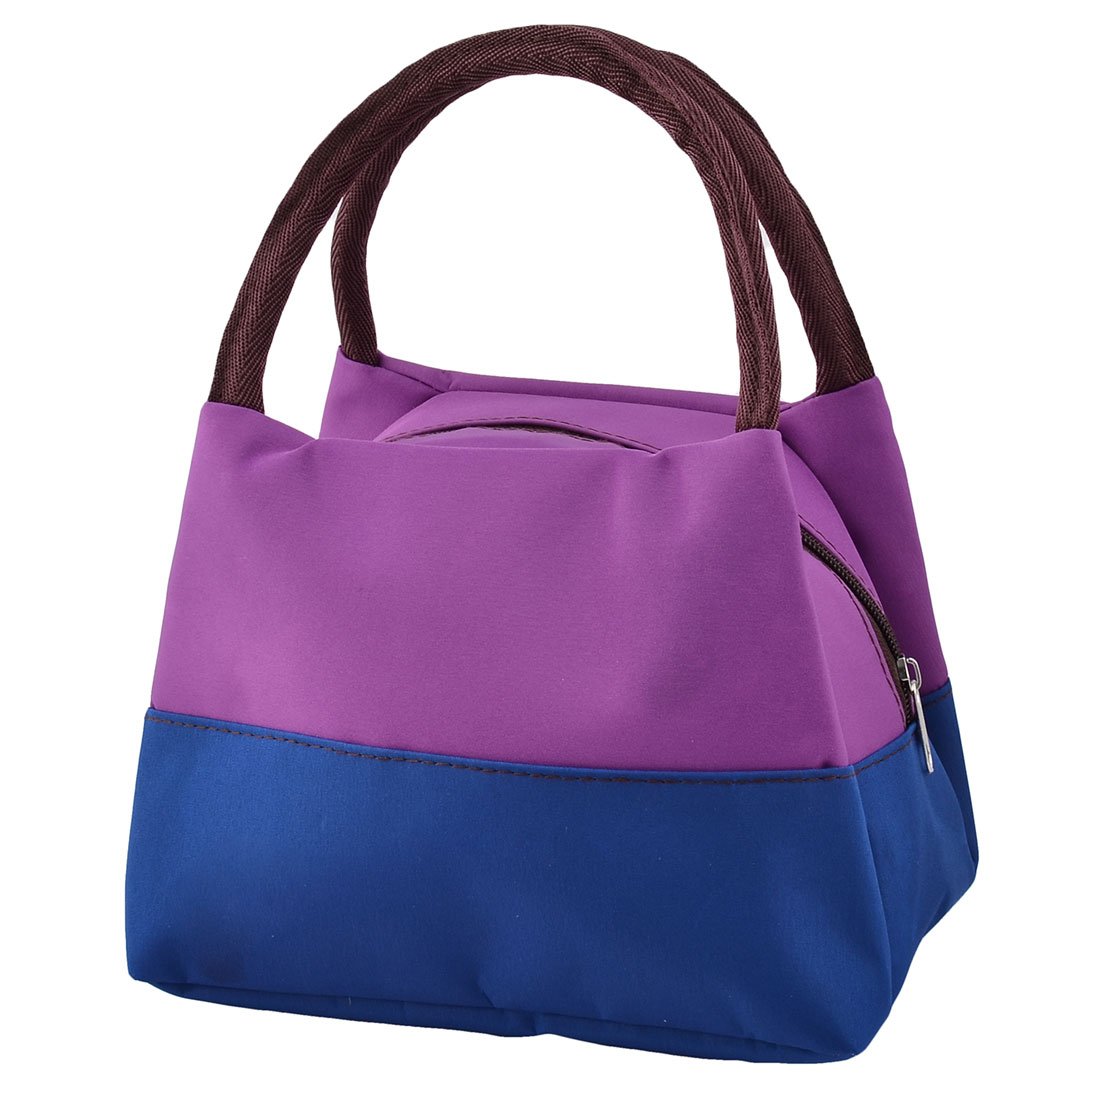 Outdoor Zipper Closure Lunch Carry Tote Pouch Cooler Bag Dark Purple Royal Blue